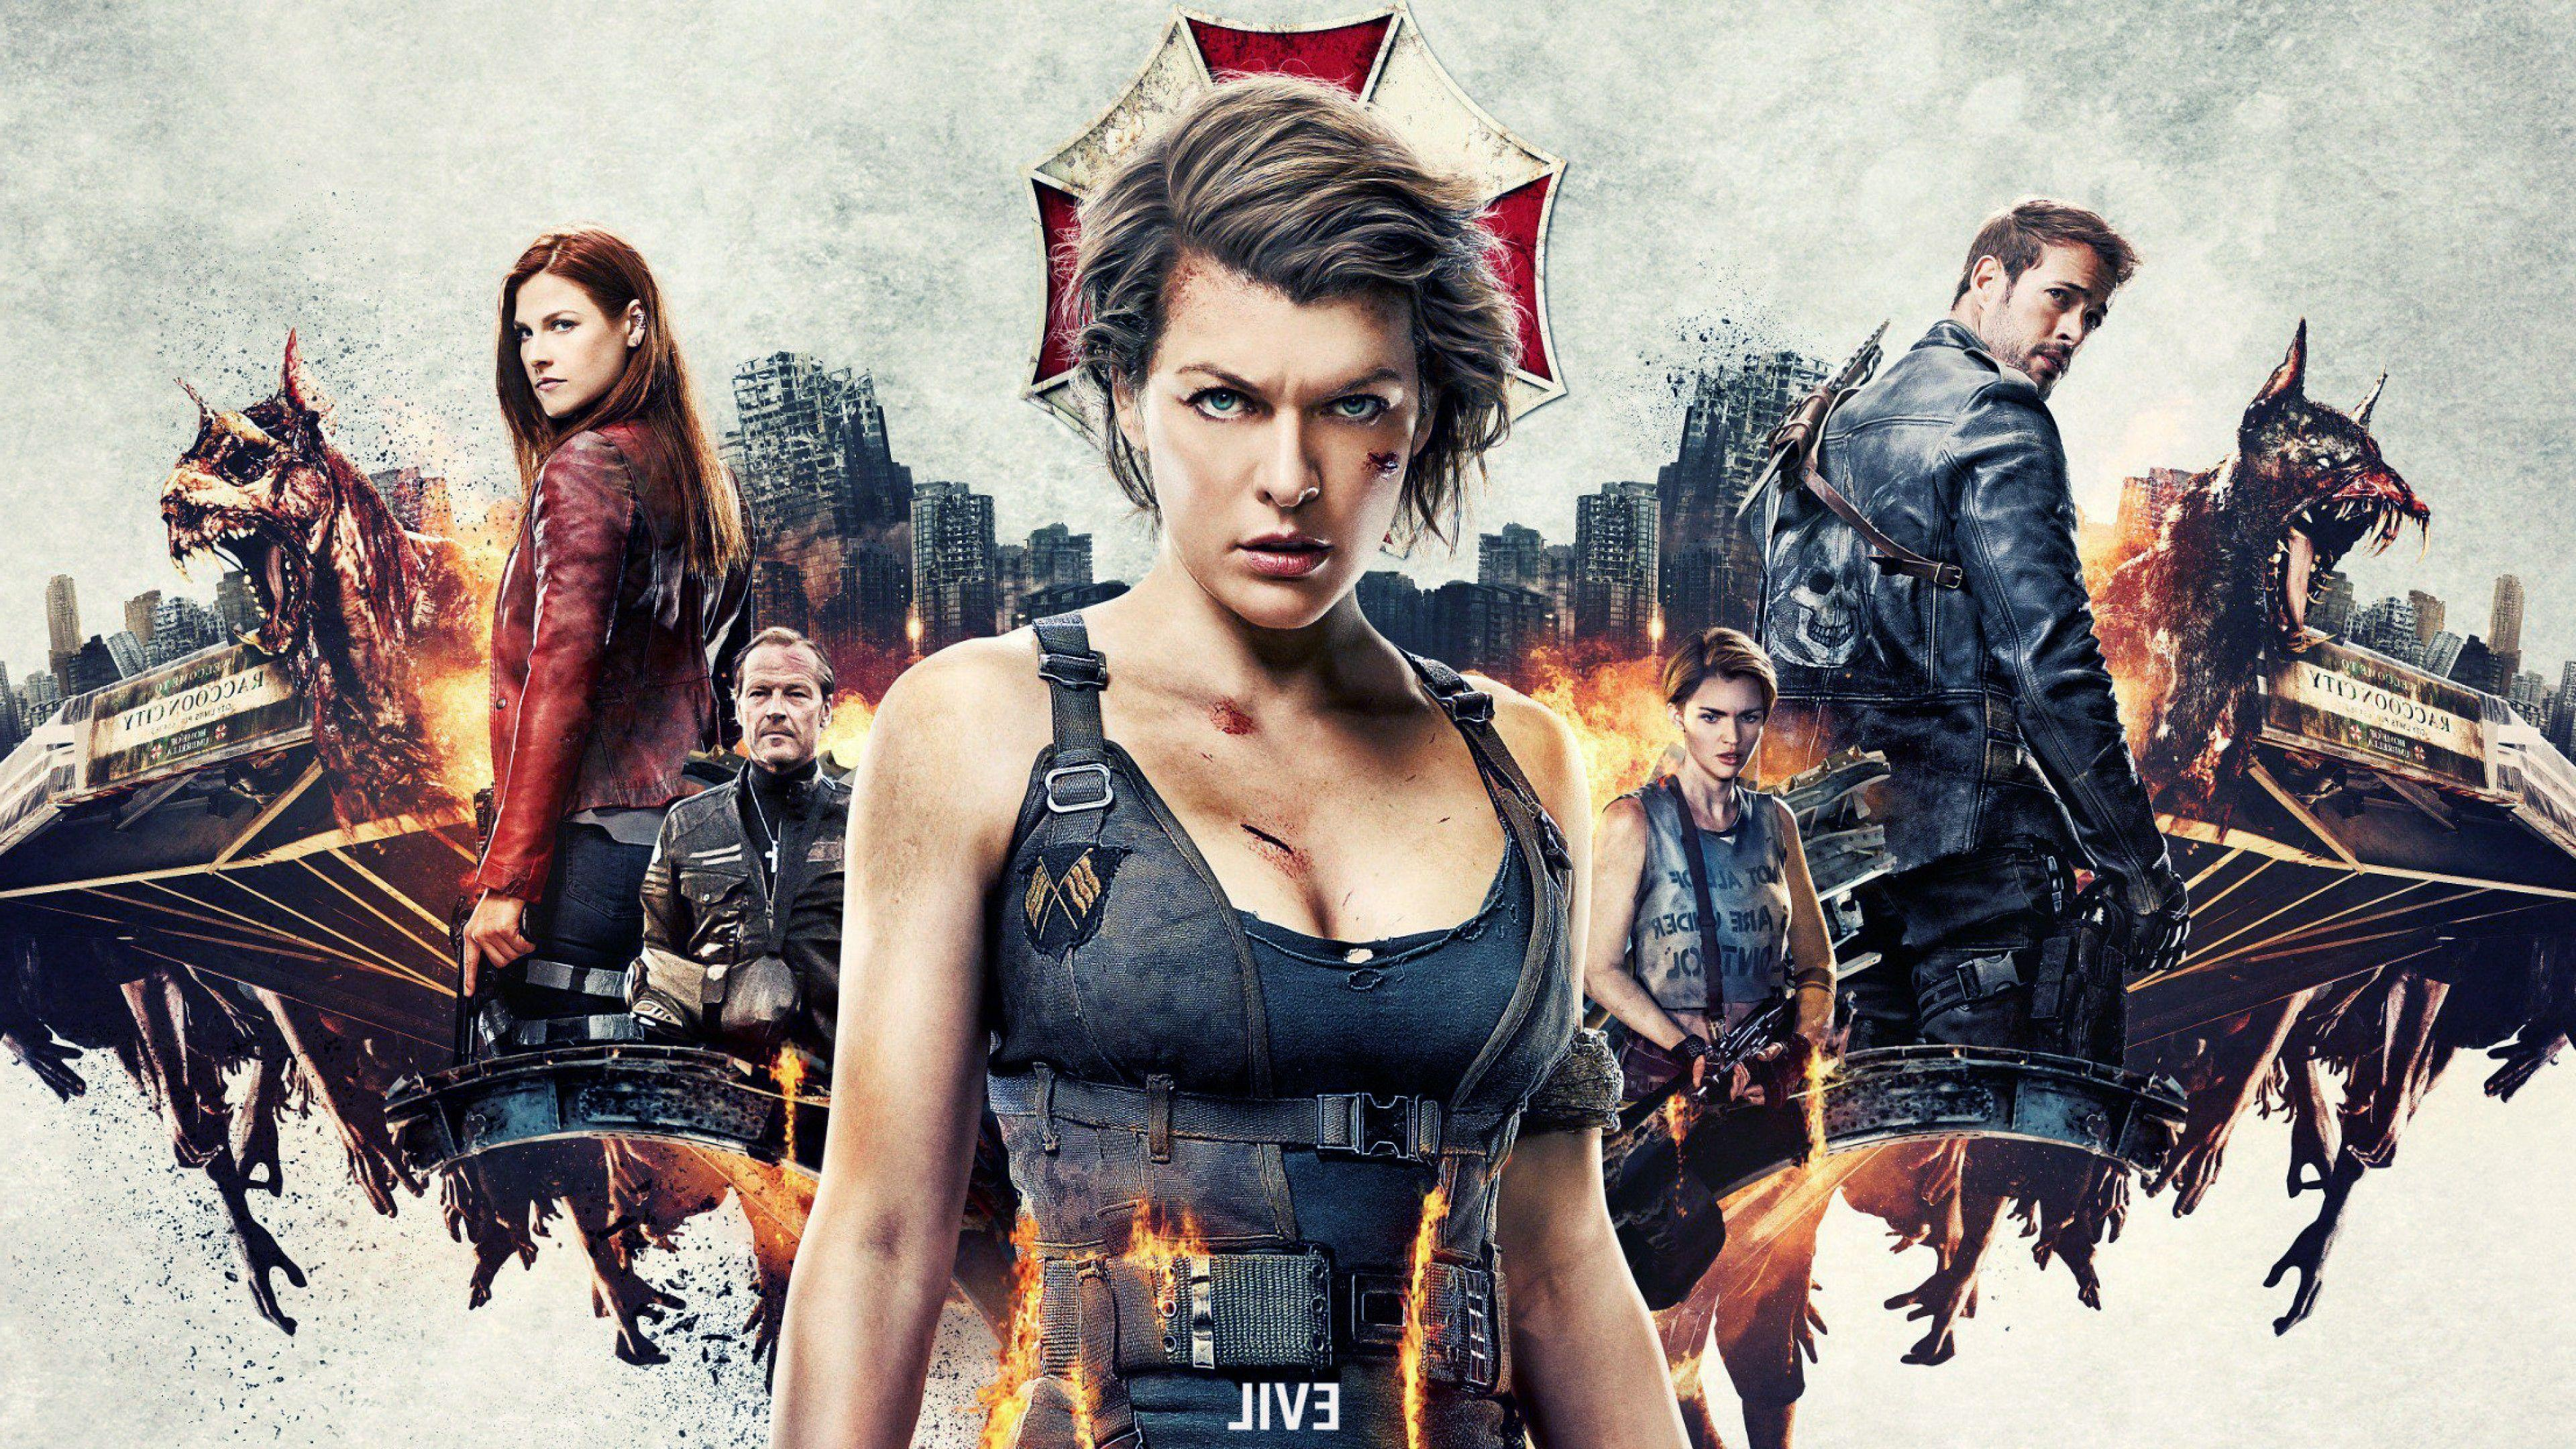 Resident Evil The Final Chapter 2016 Movie Hd Wallpaper: Resident Evil: The Final Chapter Wallpapers